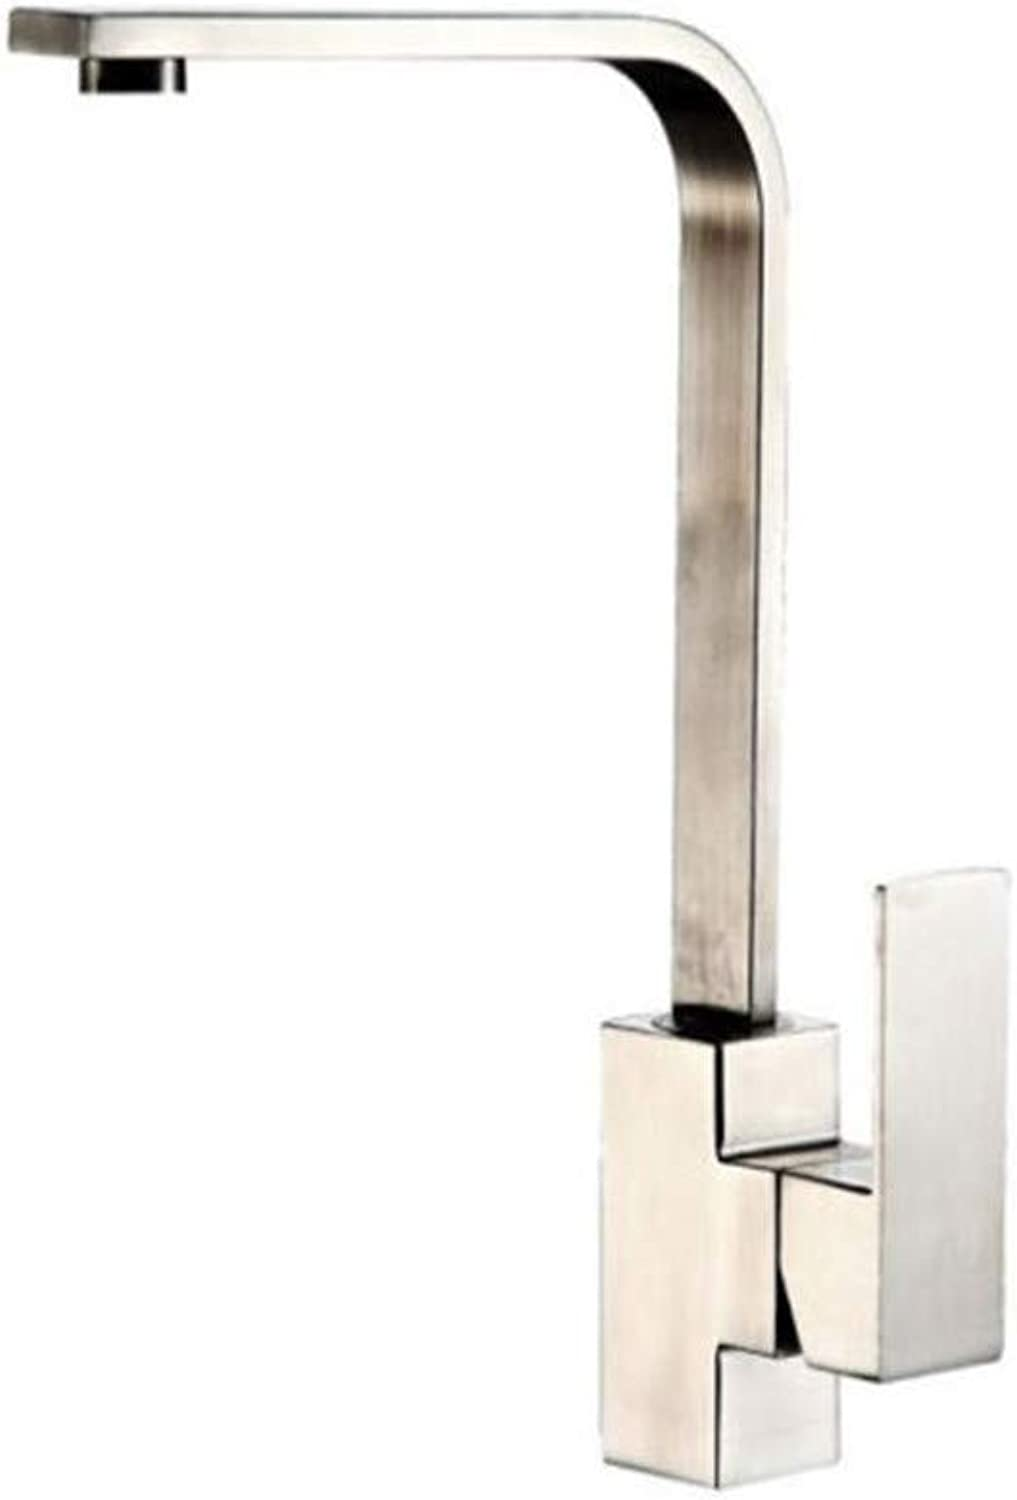 Water Tapdrinking Designer Arch304 Stainless Steel Faucet Cold and Hot Kitchen redary Sink Washbasin